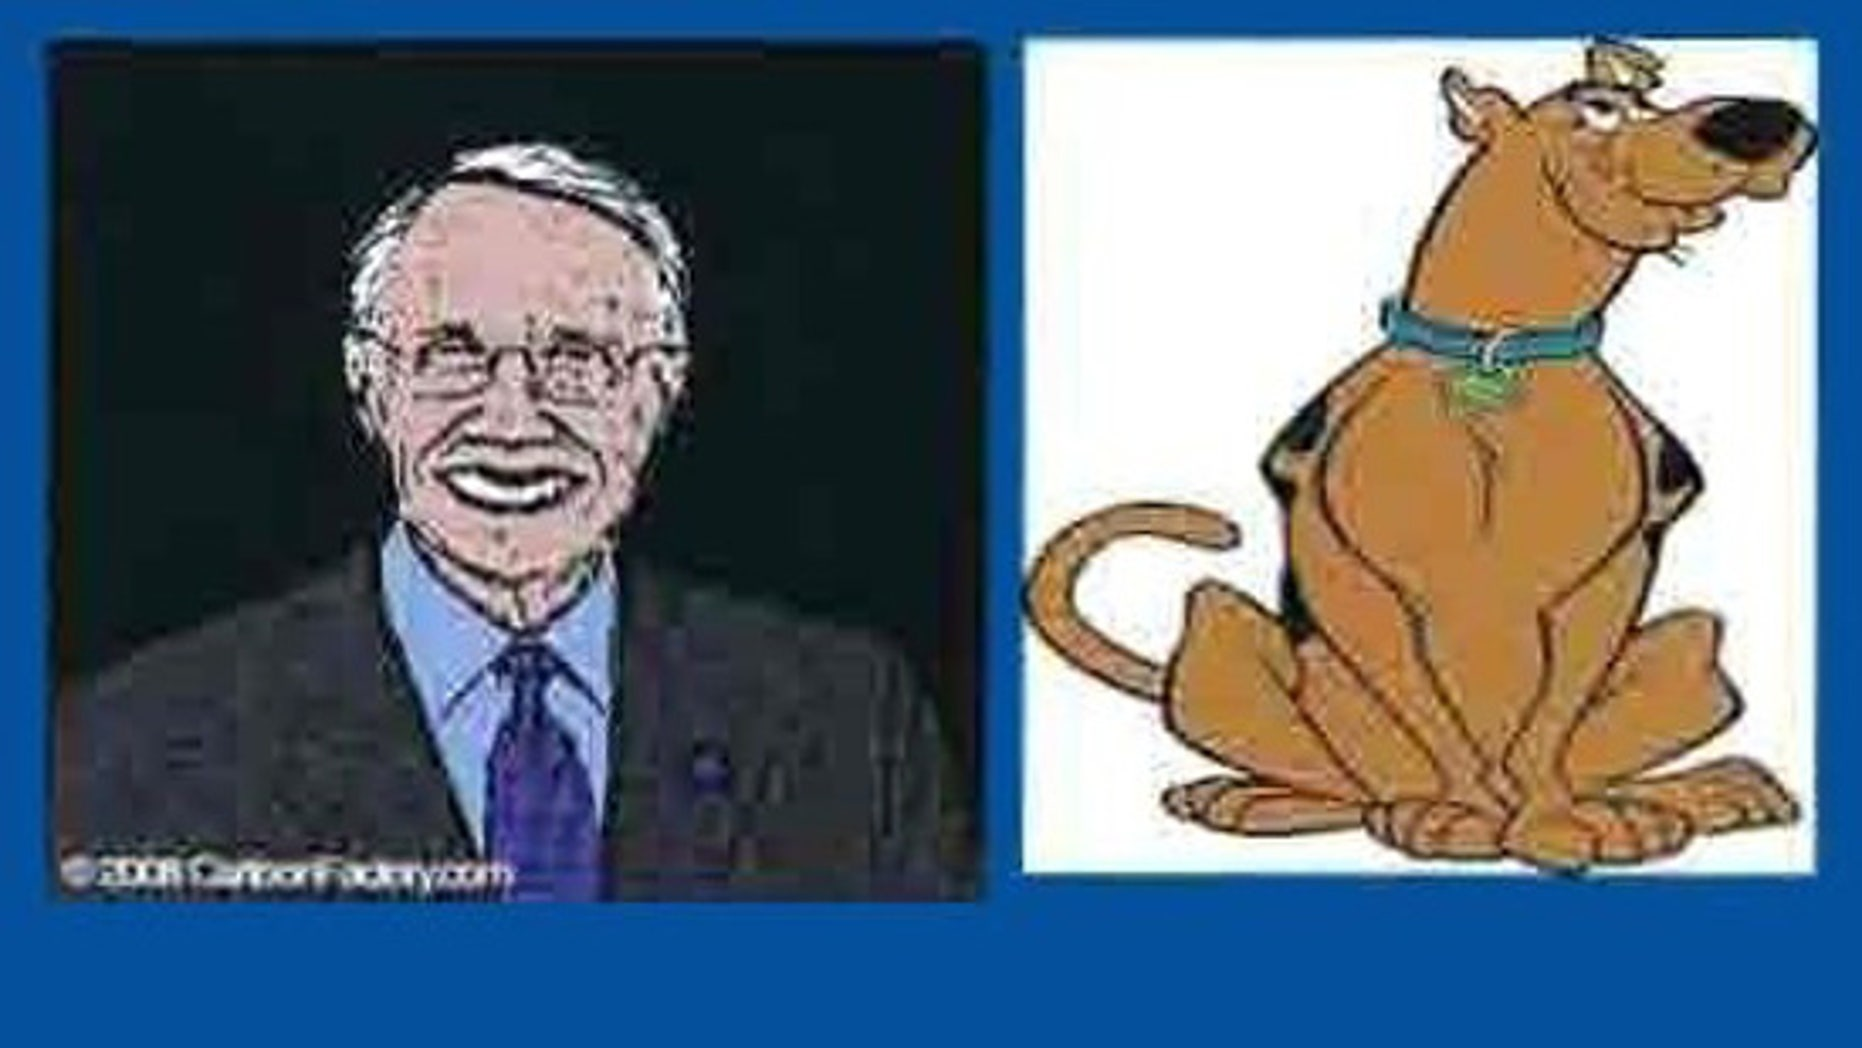 Senate Majority Leader Harry Reid was caricatured as Scooby Doo in a recent controversial Republican pitch to top fundraisers. (FNC)